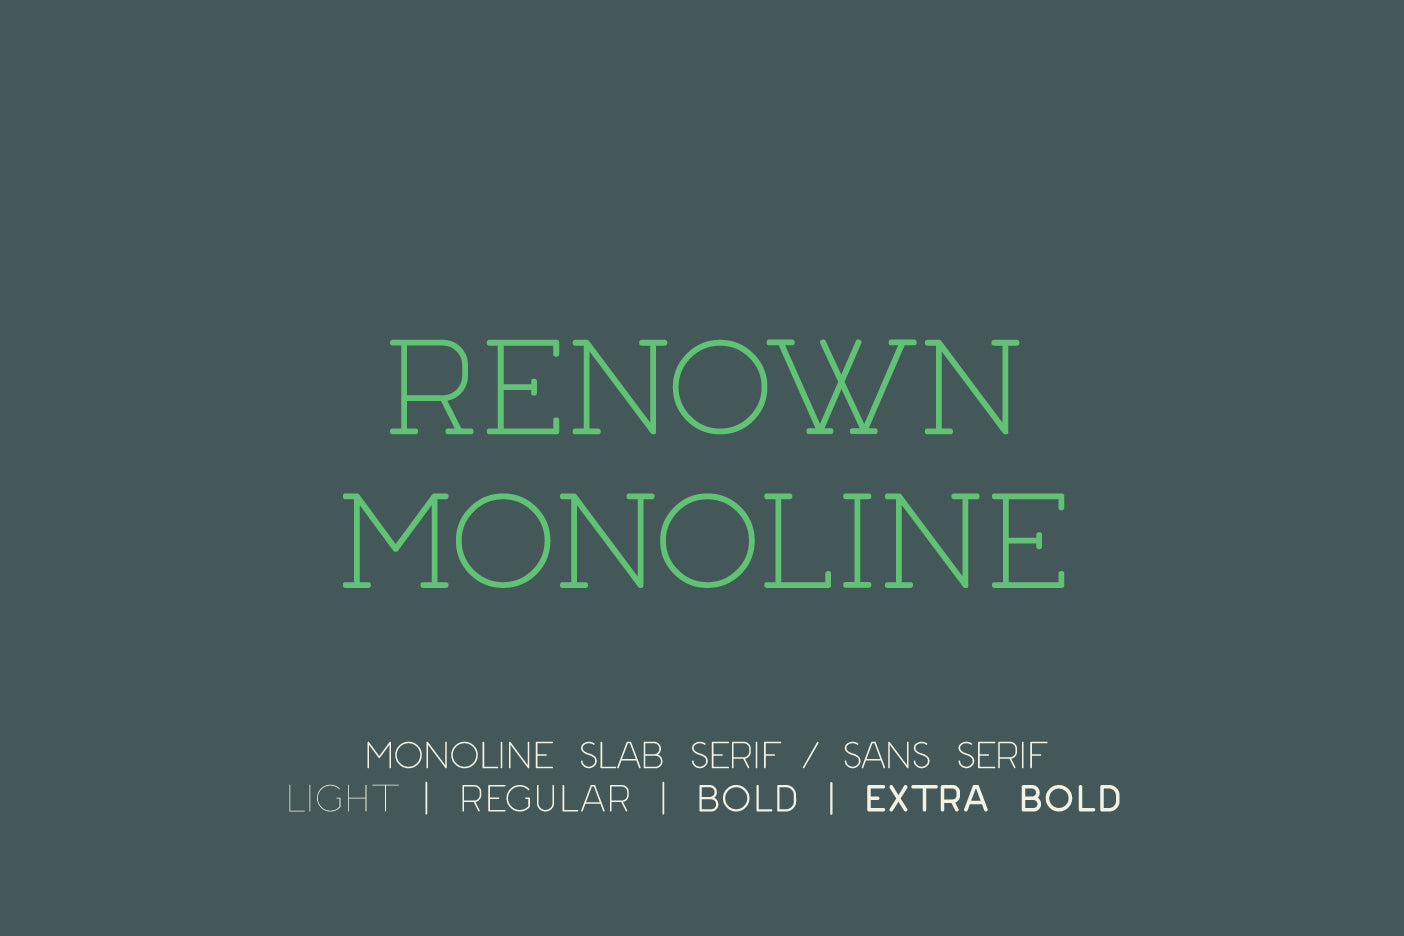 Renown Monoline Slab Serif Sans Serif font by Out of Step Font Company